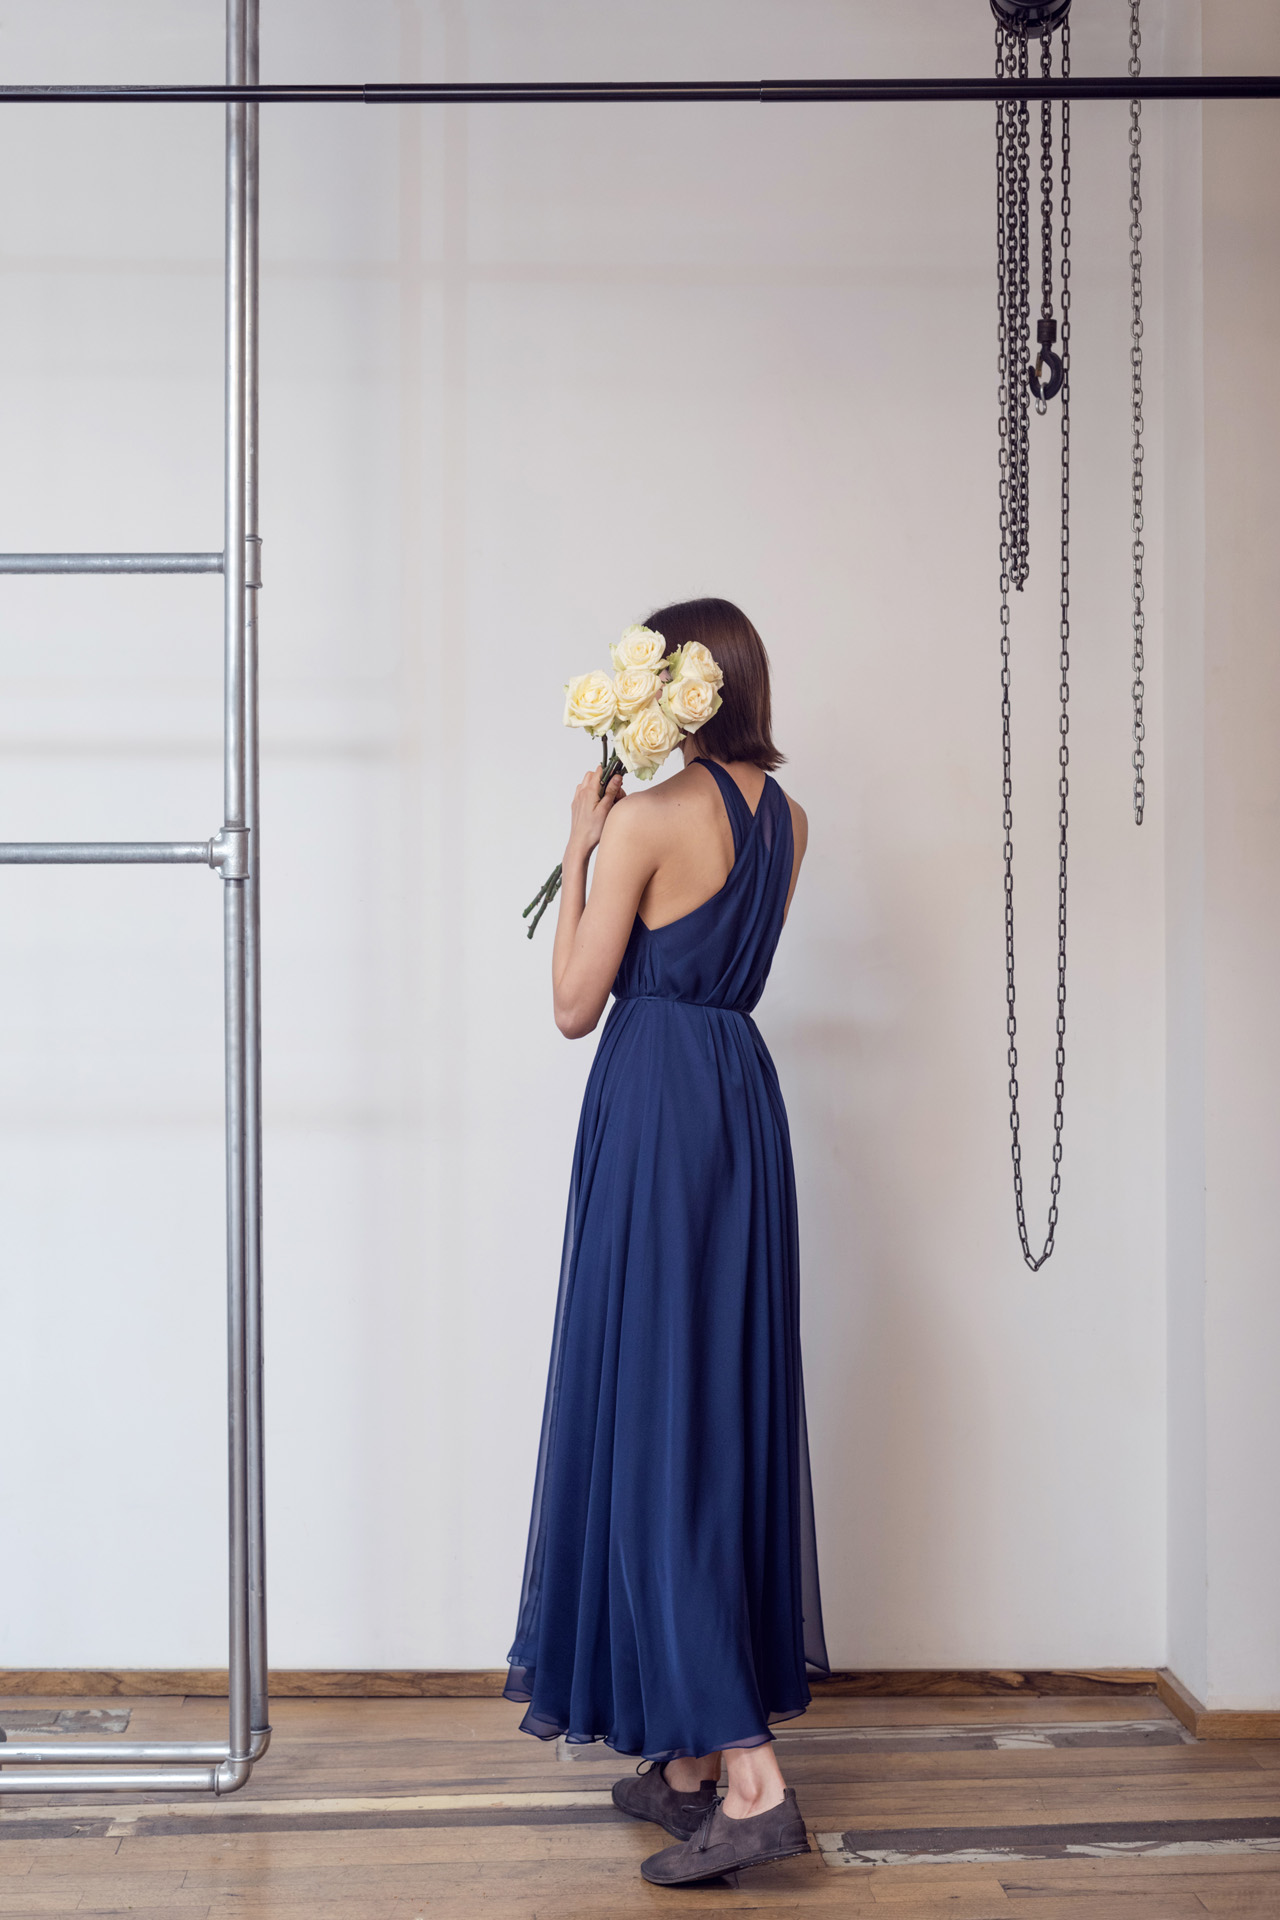 Lara Khoury | LK Stripped | Capsule 1-2019 | 14-Navy Blue Muslin Halter Dress 2.jpg